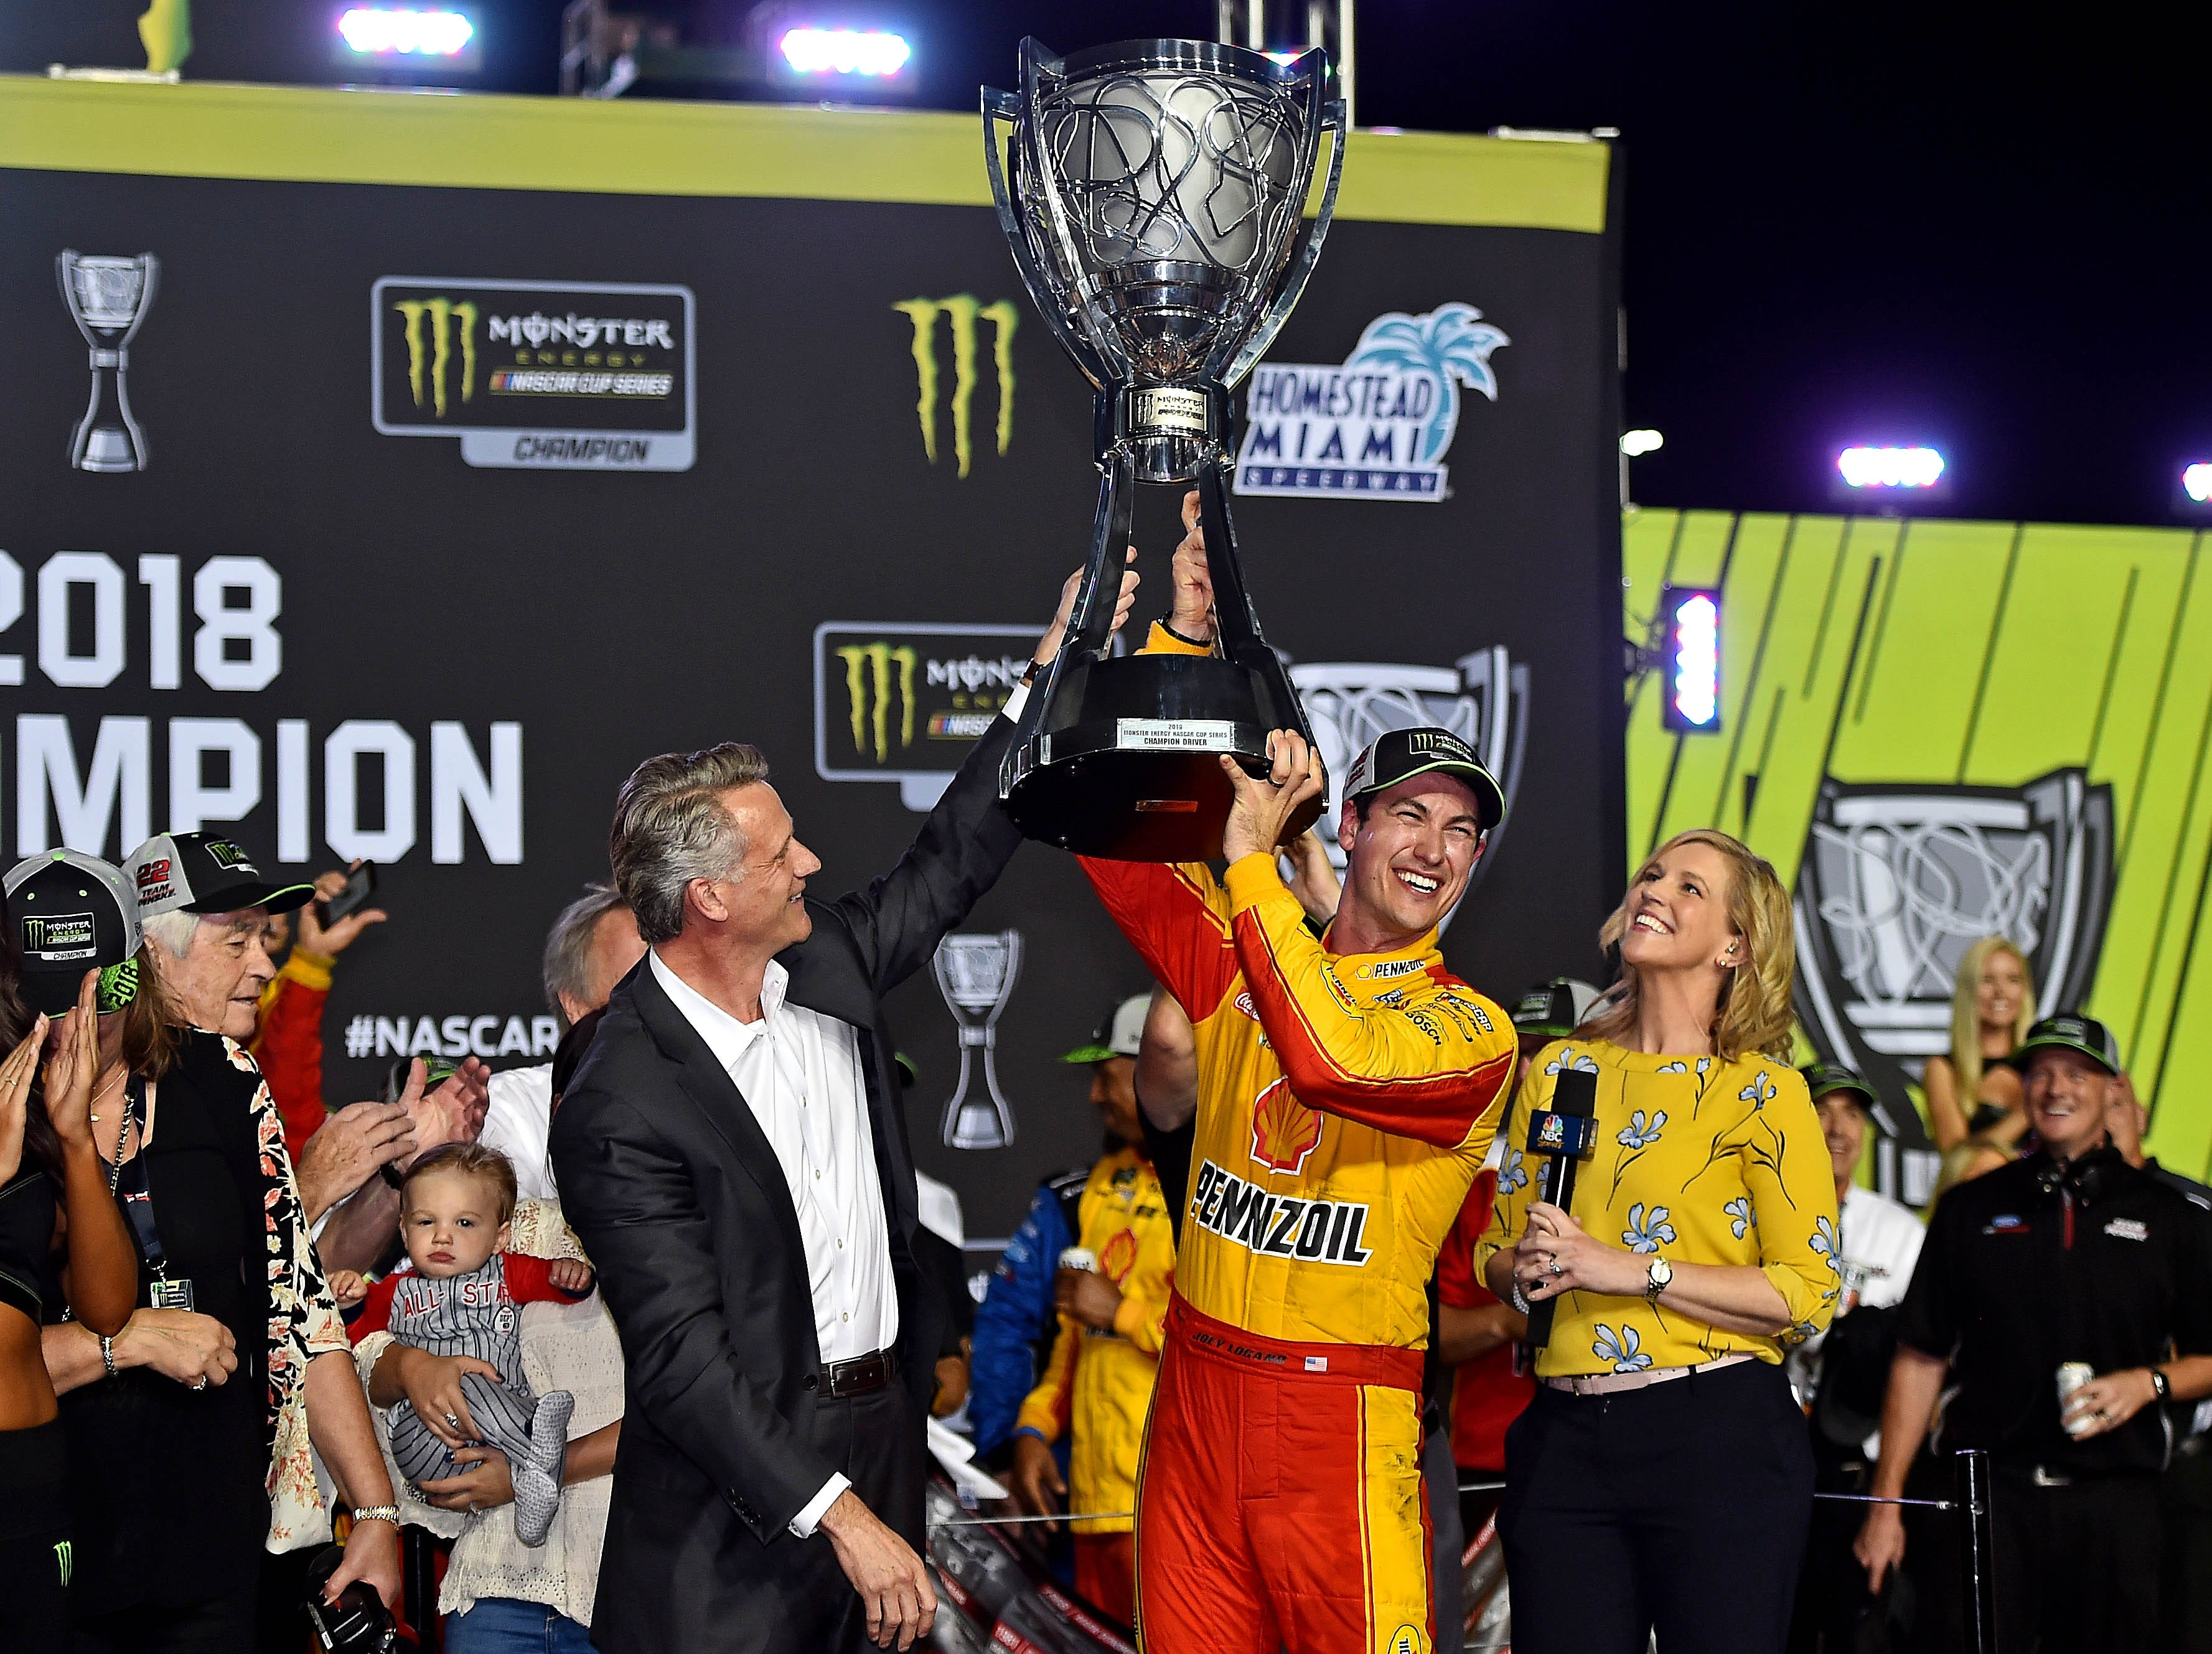 Joey Logano (22) celebrates winning the NASCAR Cup Series championship at Homestead-Miami Speedway.